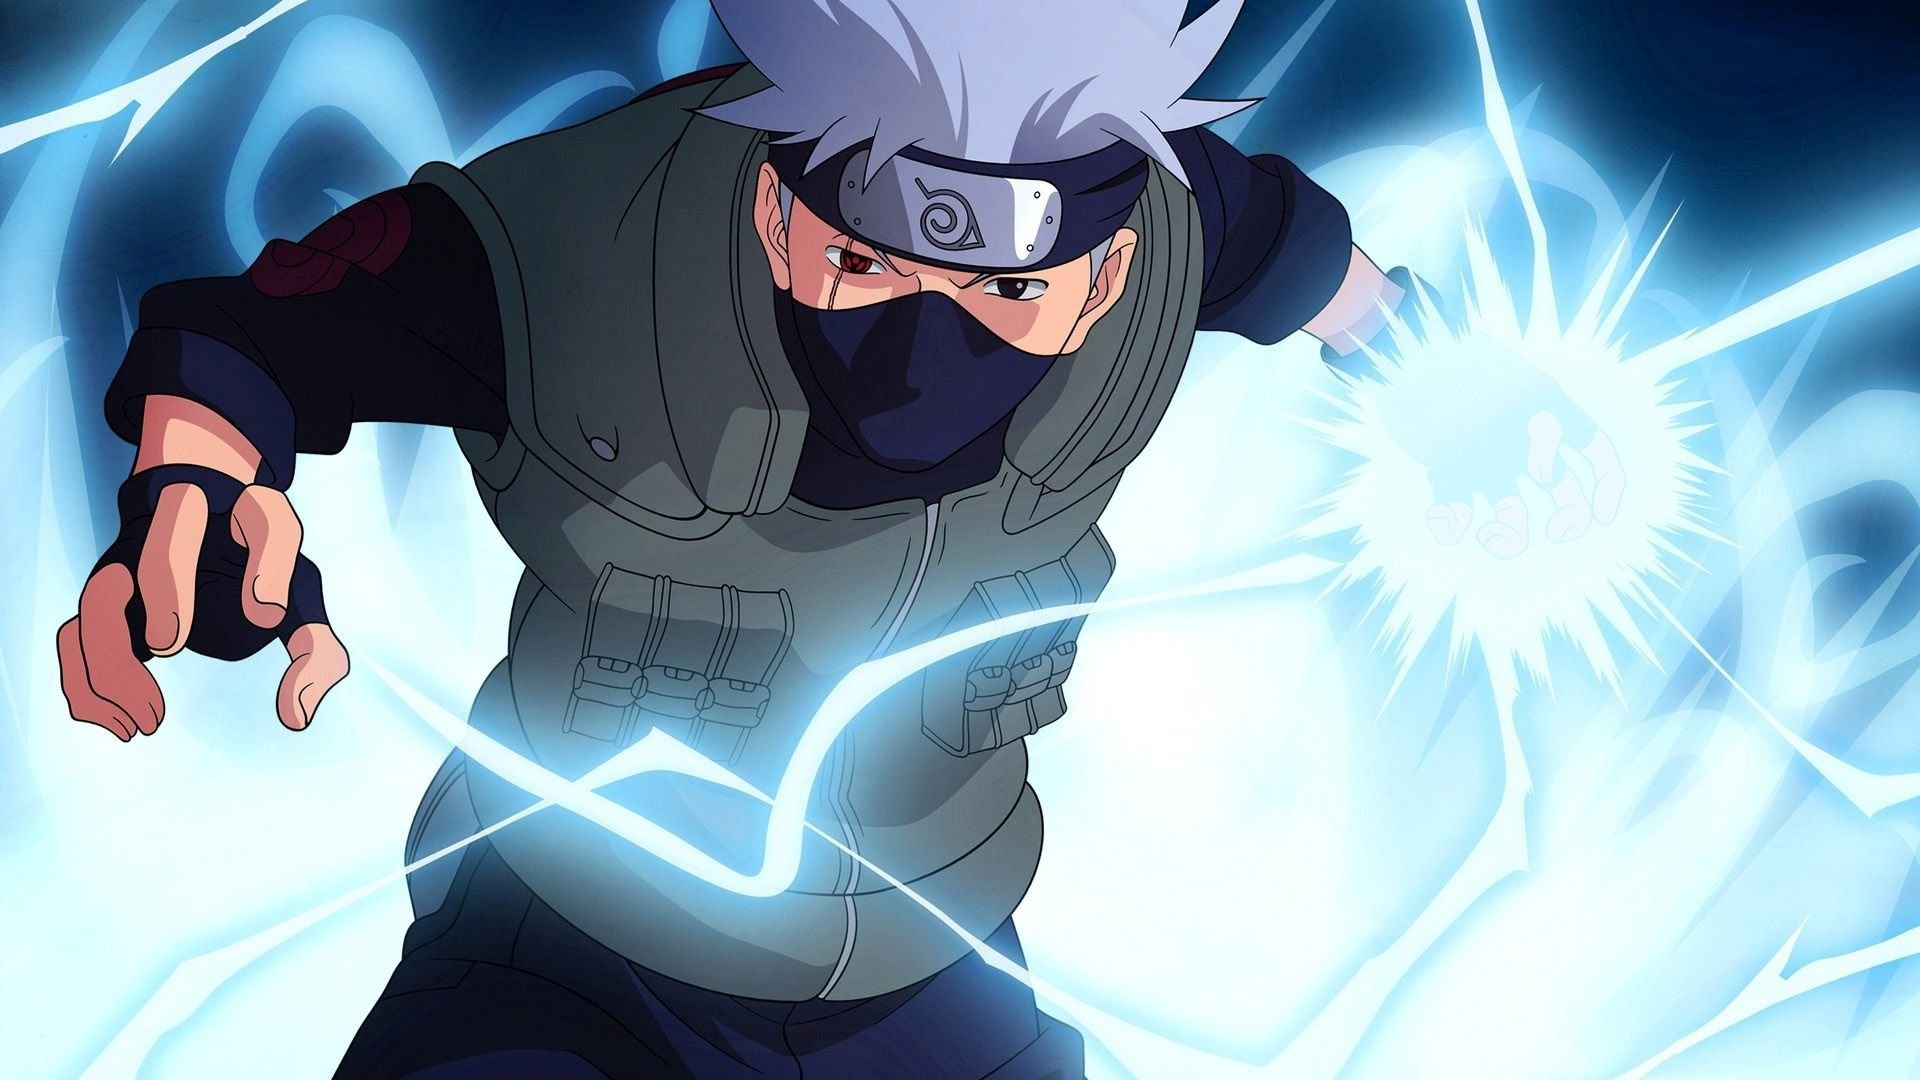 Kakashi hatake wallpaper hd wallpapersafari - Kakashi sensei wallpaper ...